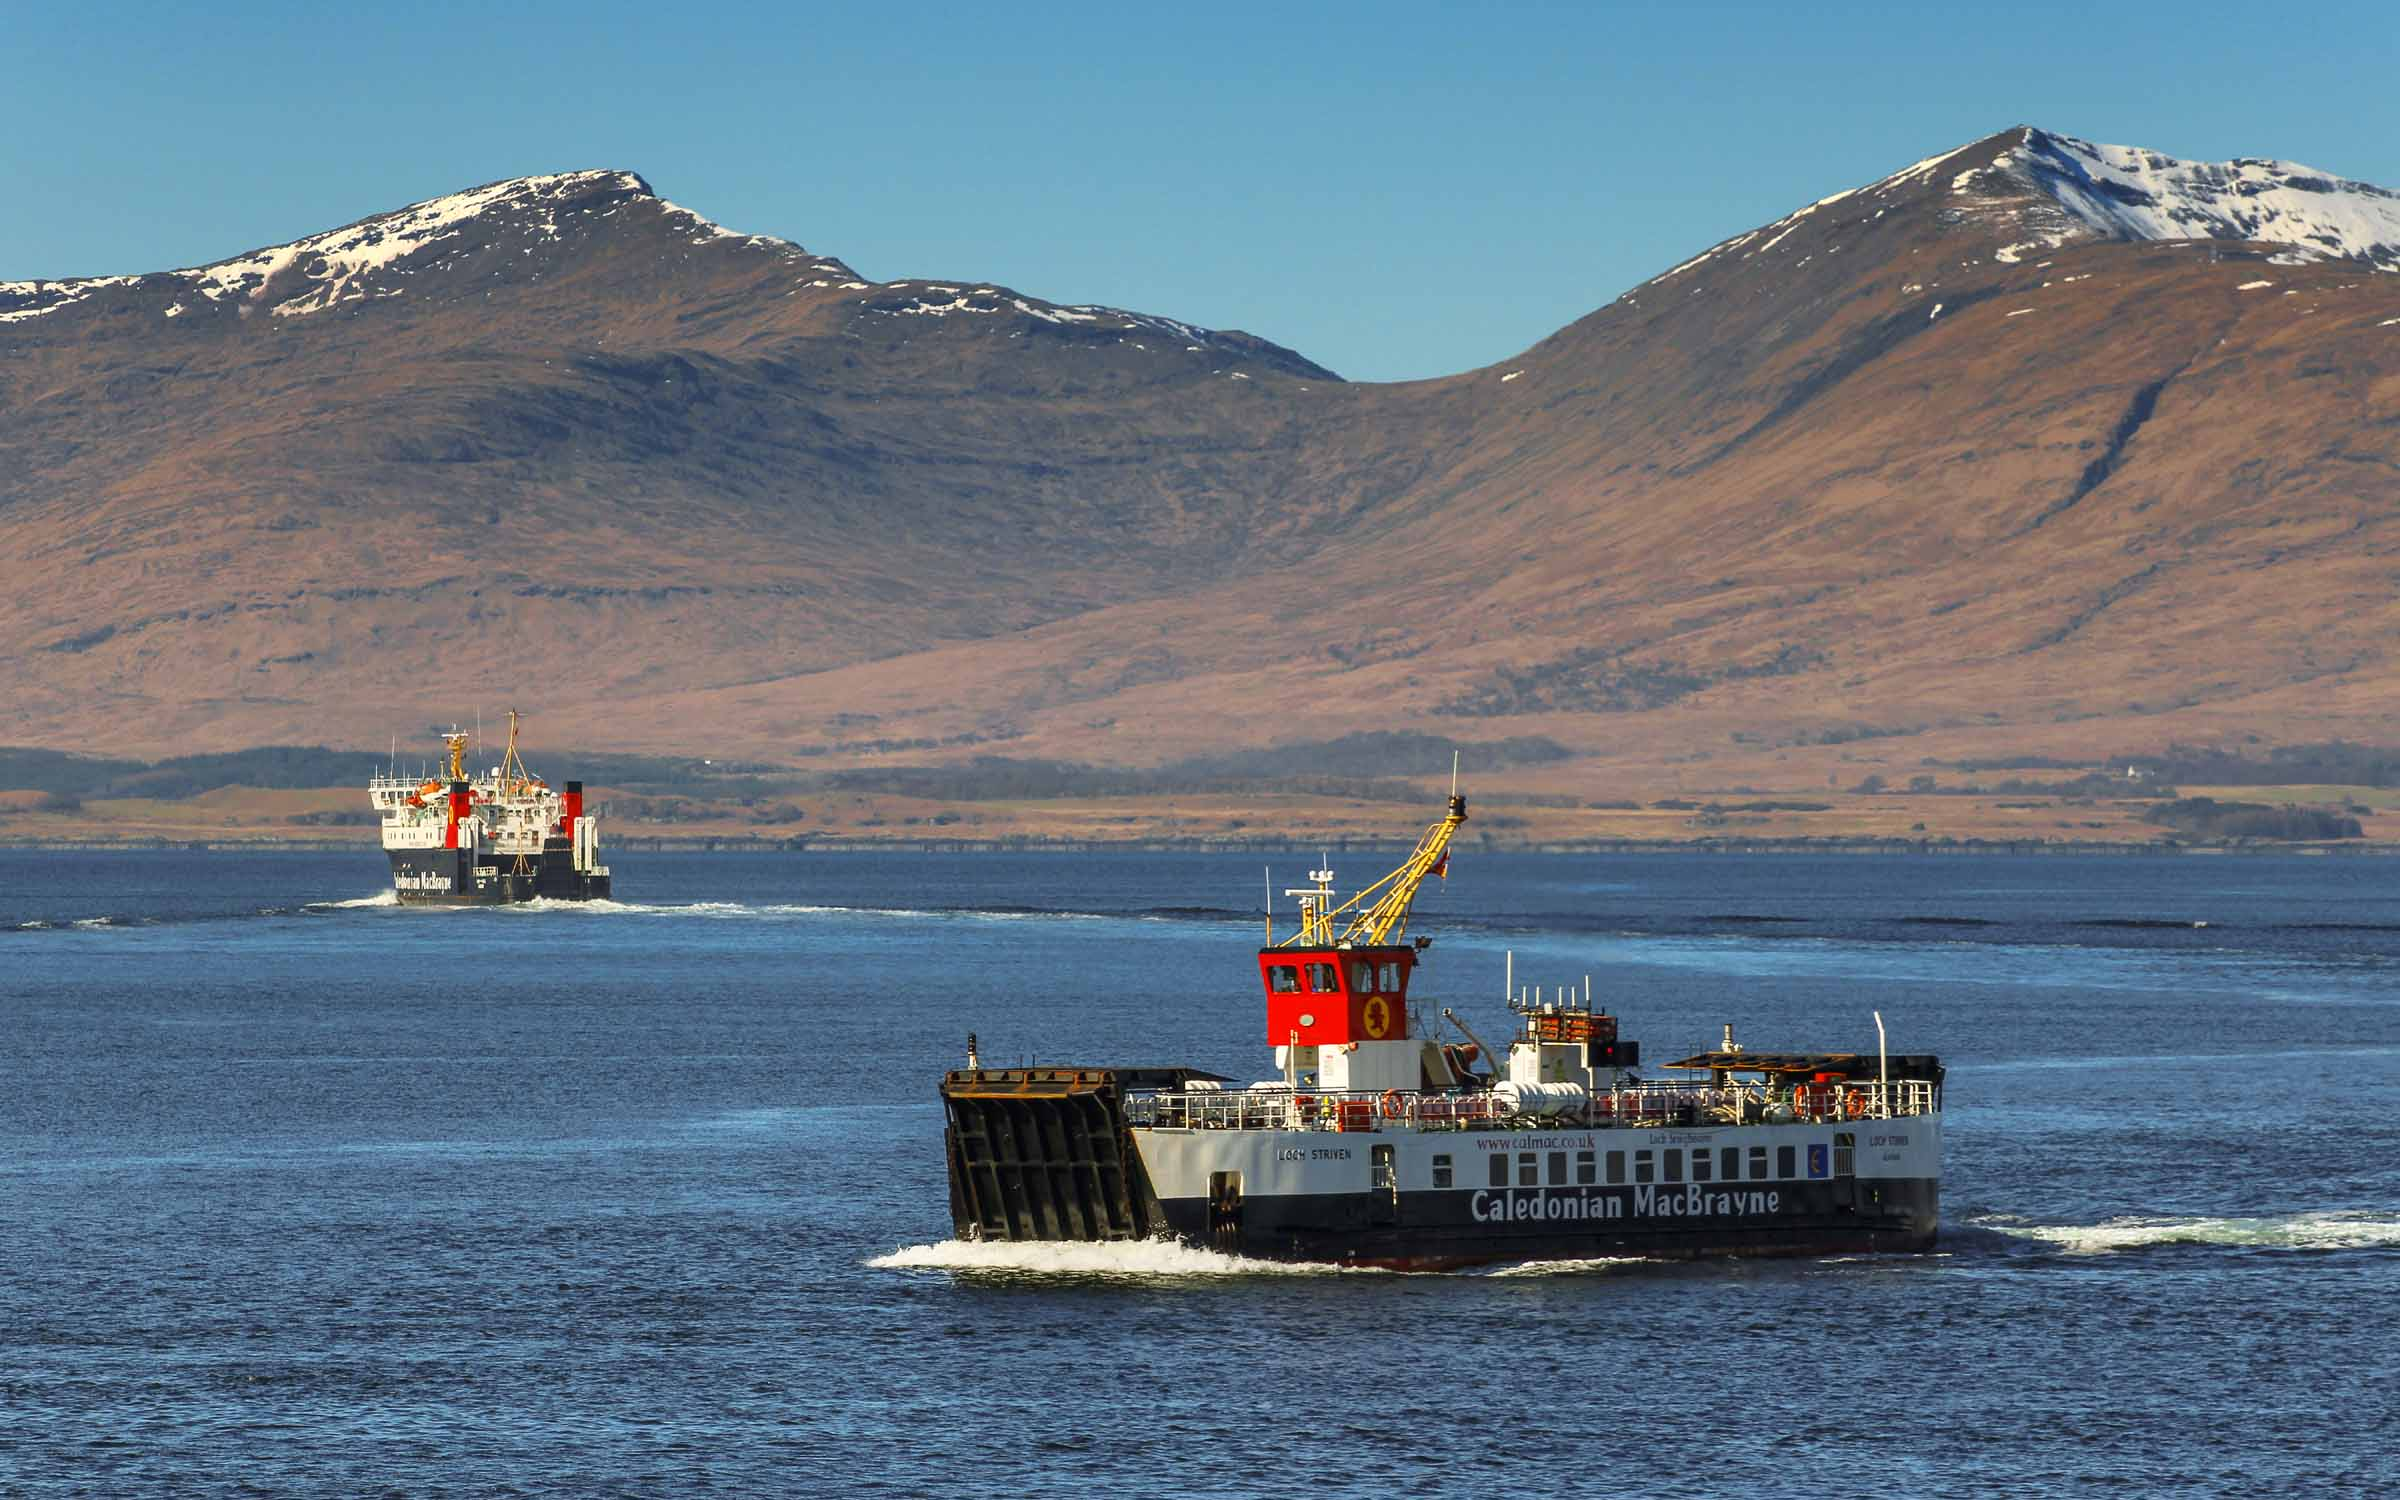 Loch Striven and Lord of the Isles off Kerrera (Ships of CalMac)